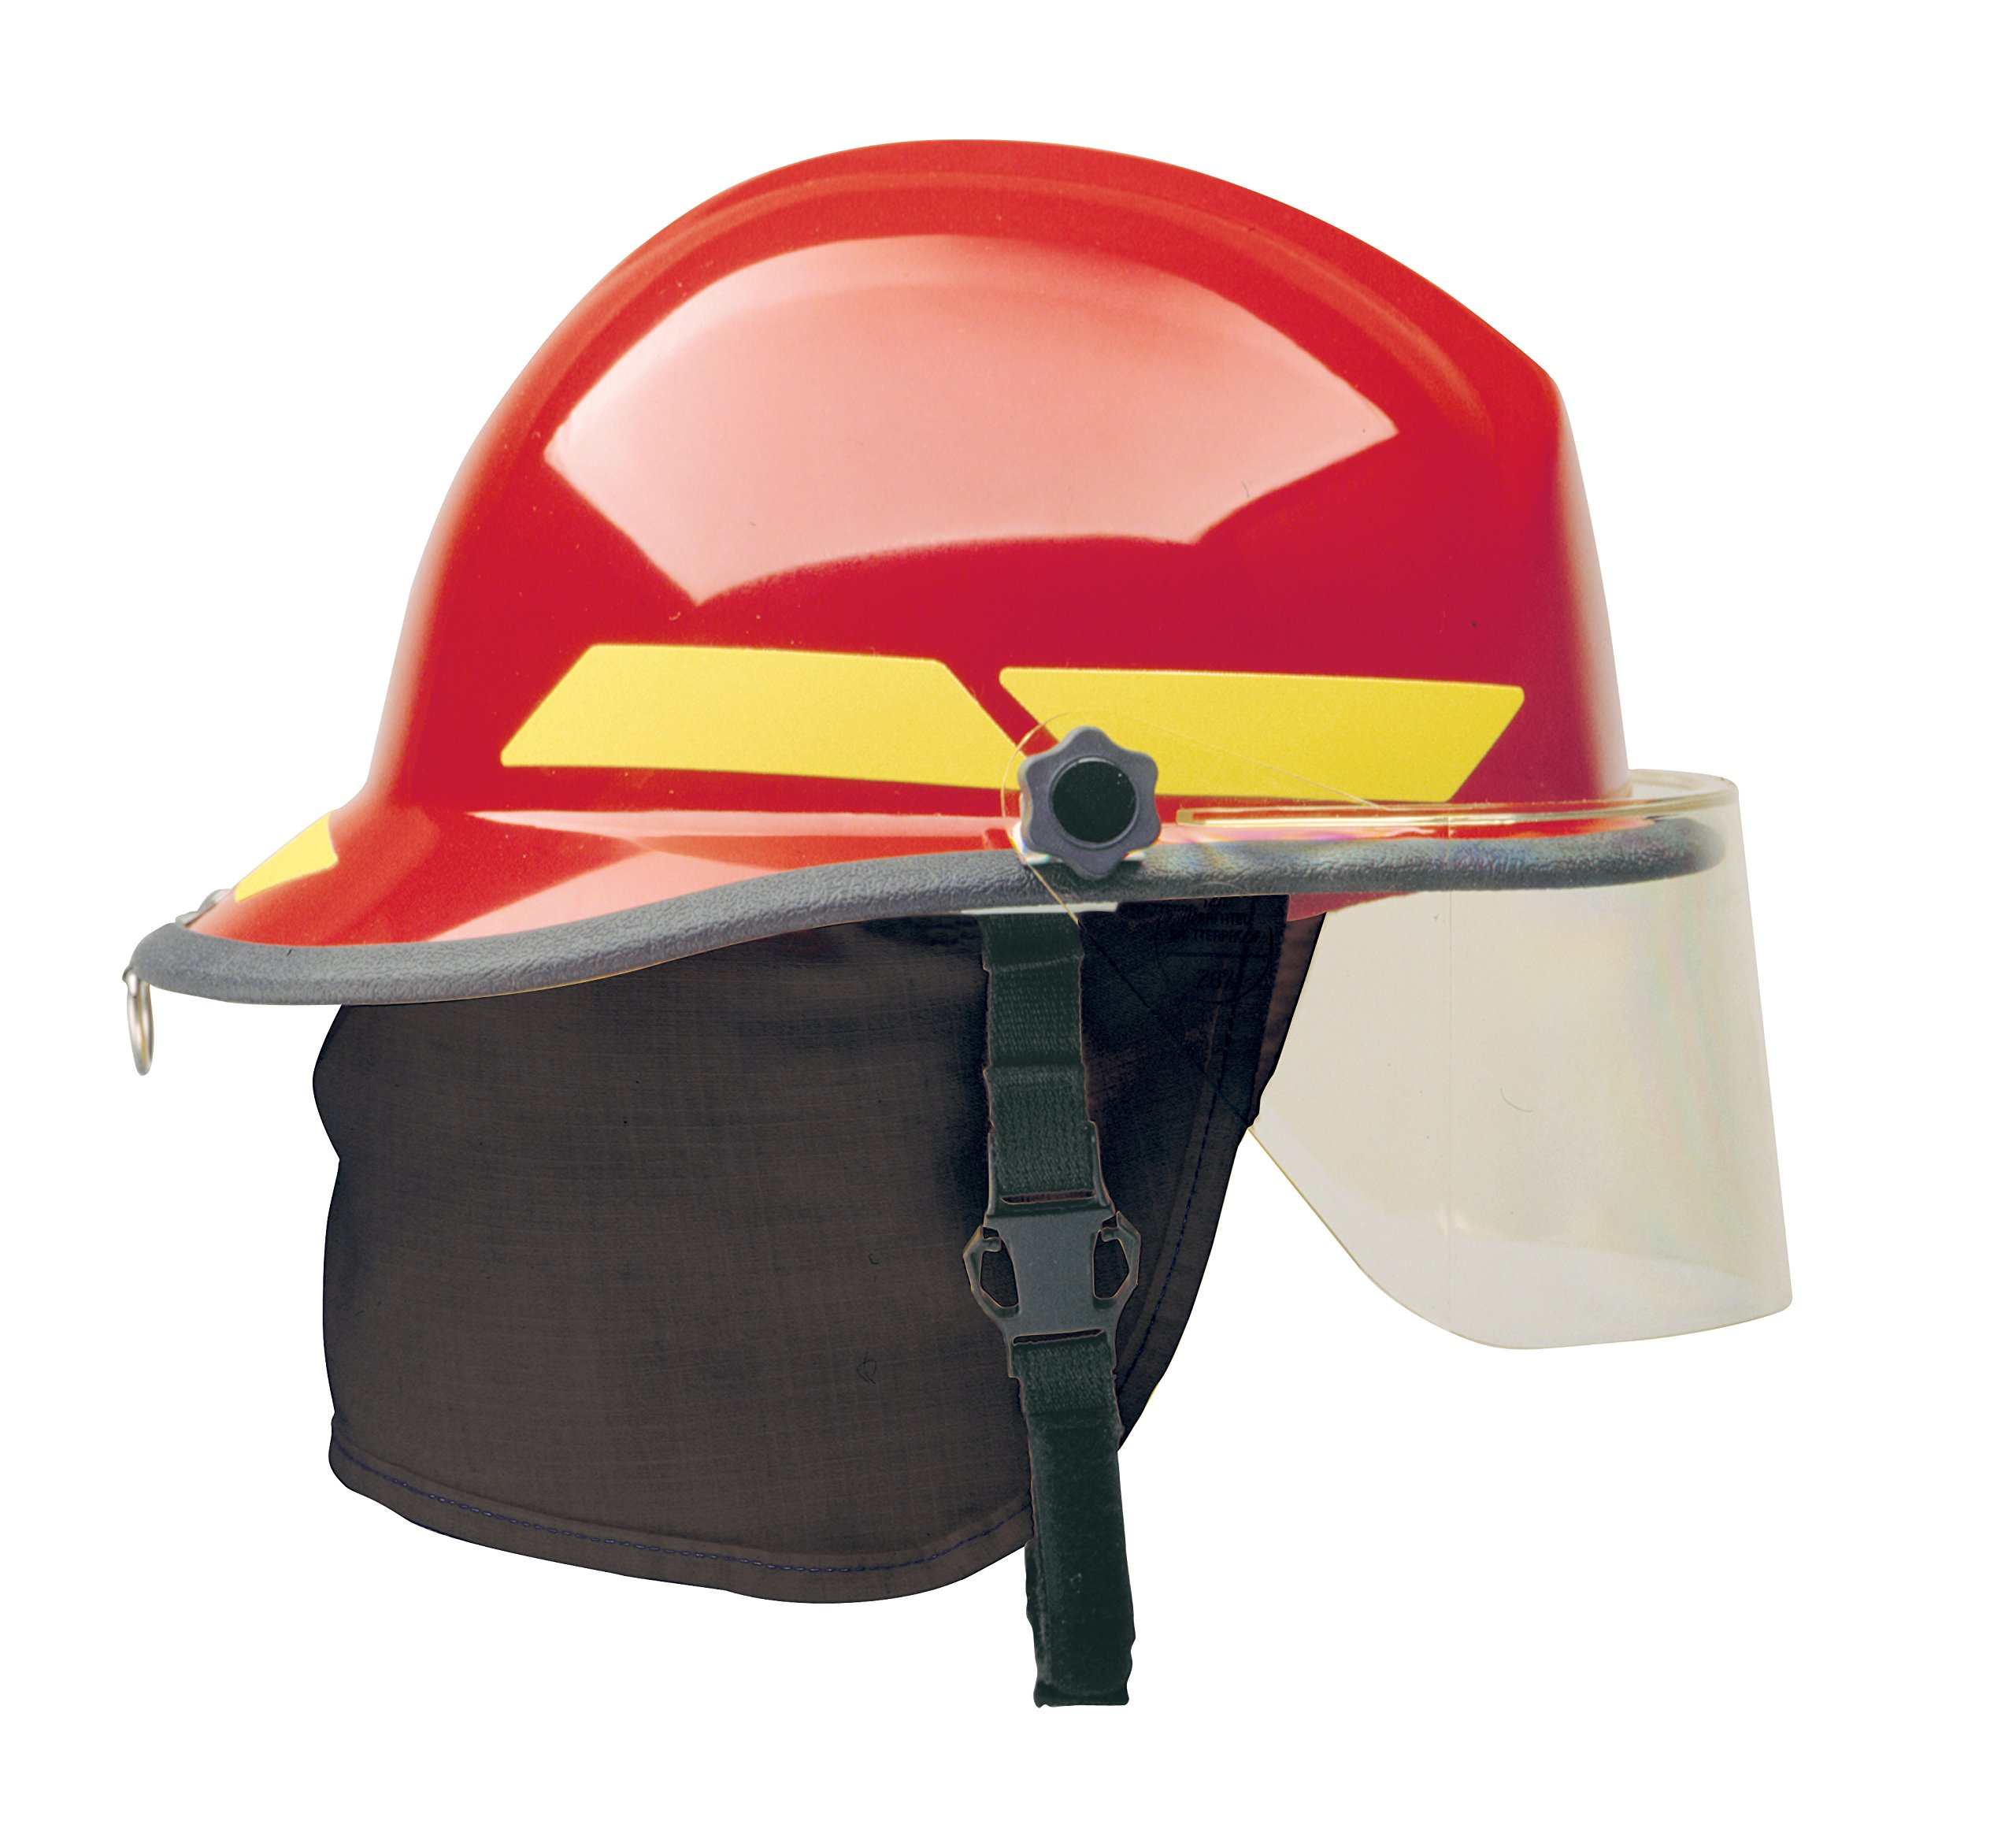 One Size Heat-Formed Polycarbonate Visor 7 x 15 x 0.040 for use with Sentinel 2 Headgear only Heat-Formed Polycarbonate Visor 7 x 15 x 0.040 for use with Sentinel 2 Headgear only Bullard 840PX2 Clear